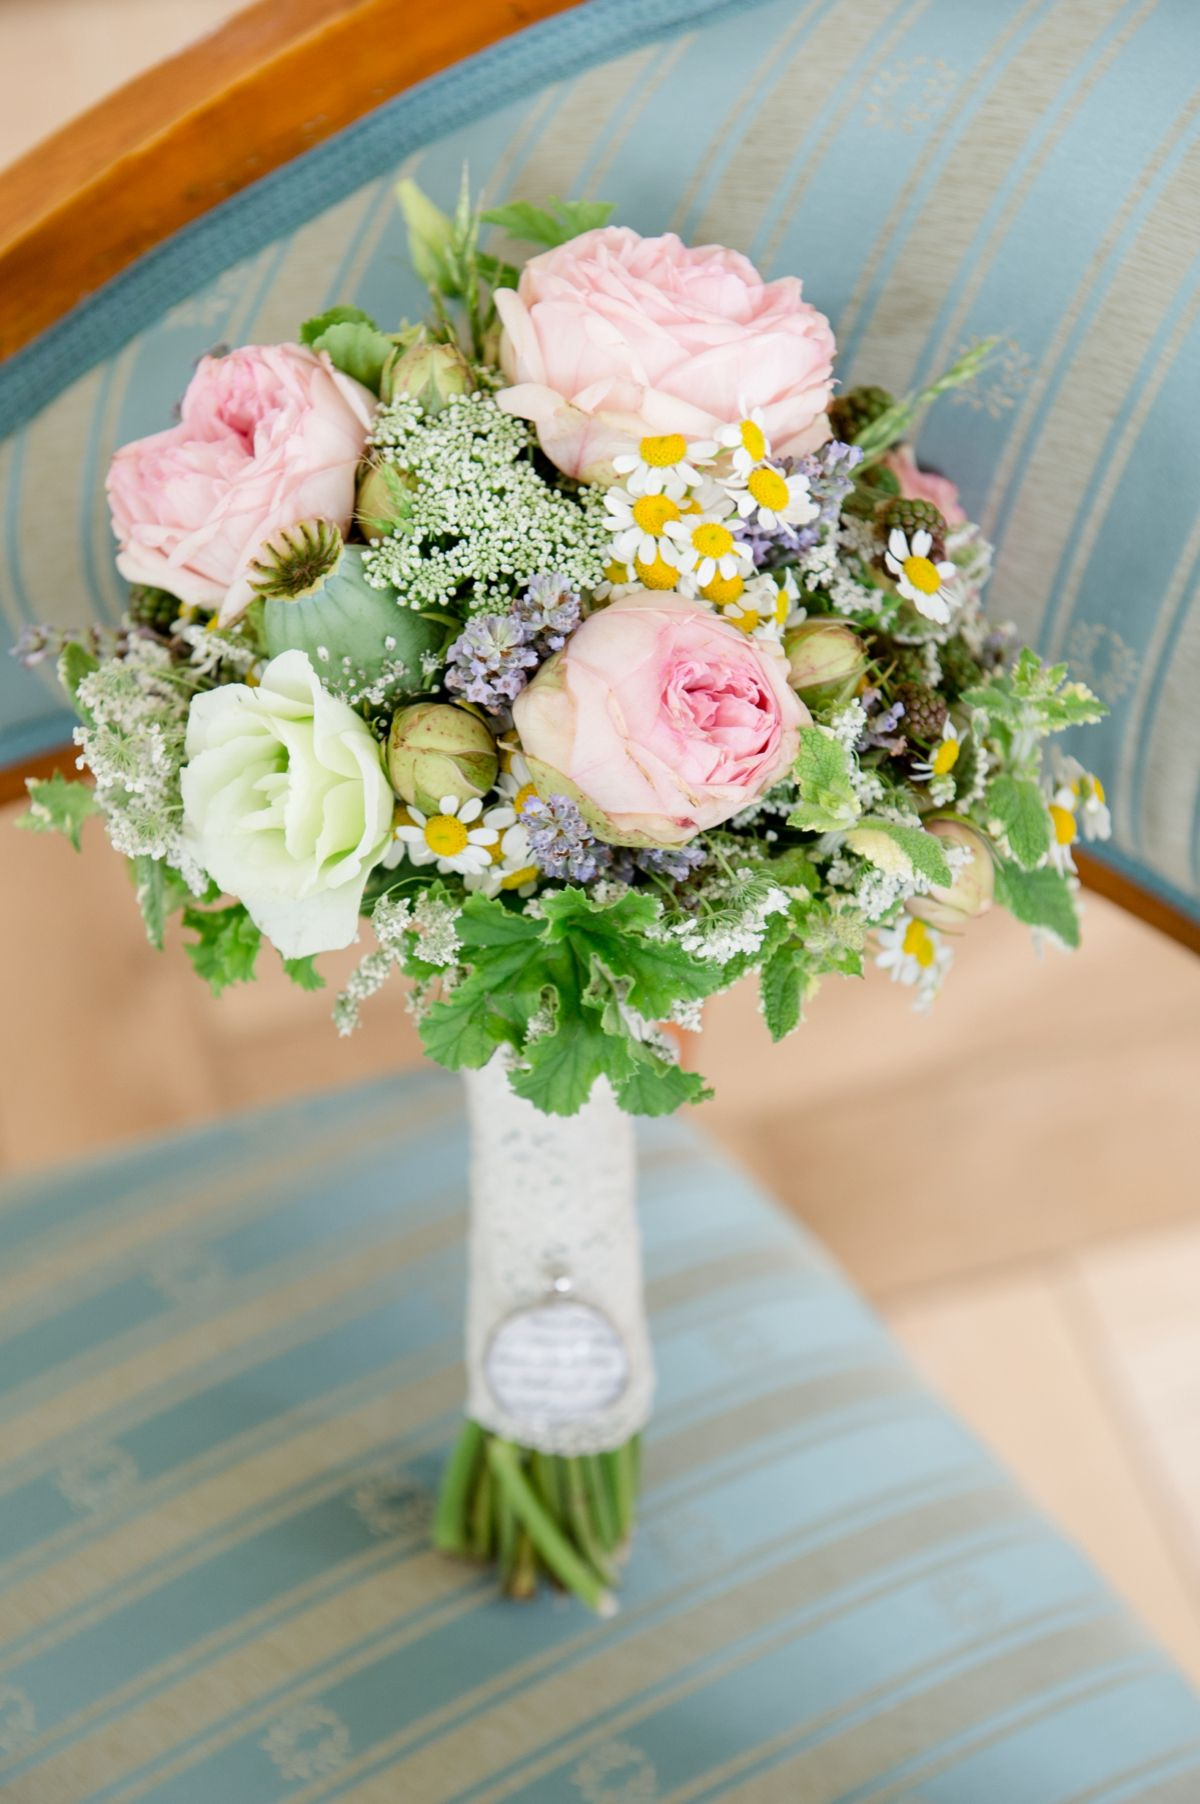 brautstrau vintage wedding bouquet wedding flowers rosa pastell photo by rebecca conte. Black Bedroom Furniture Sets. Home Design Ideas